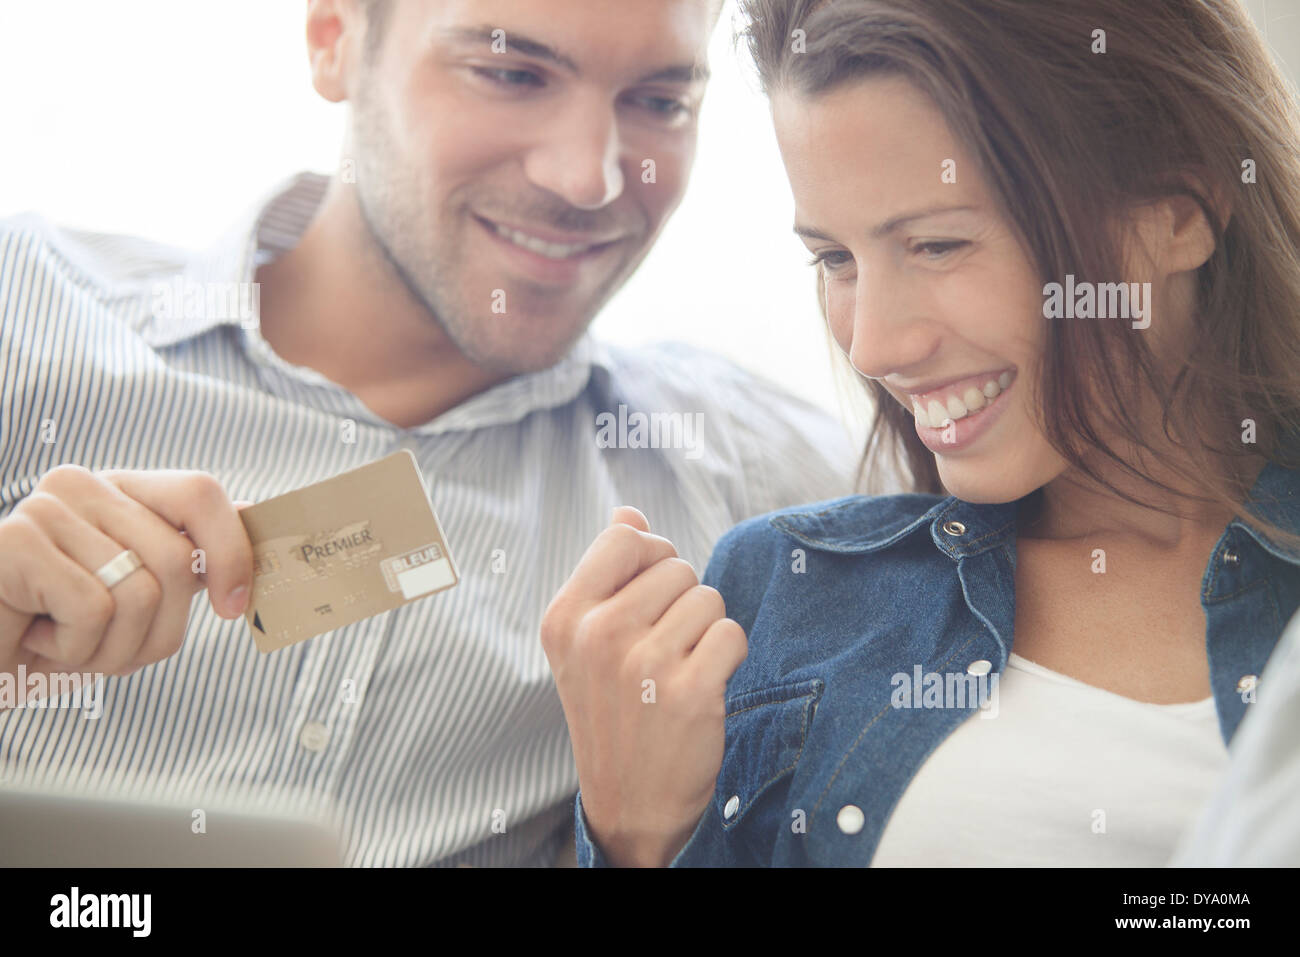 Couple using credit card to shop online - Stock Image